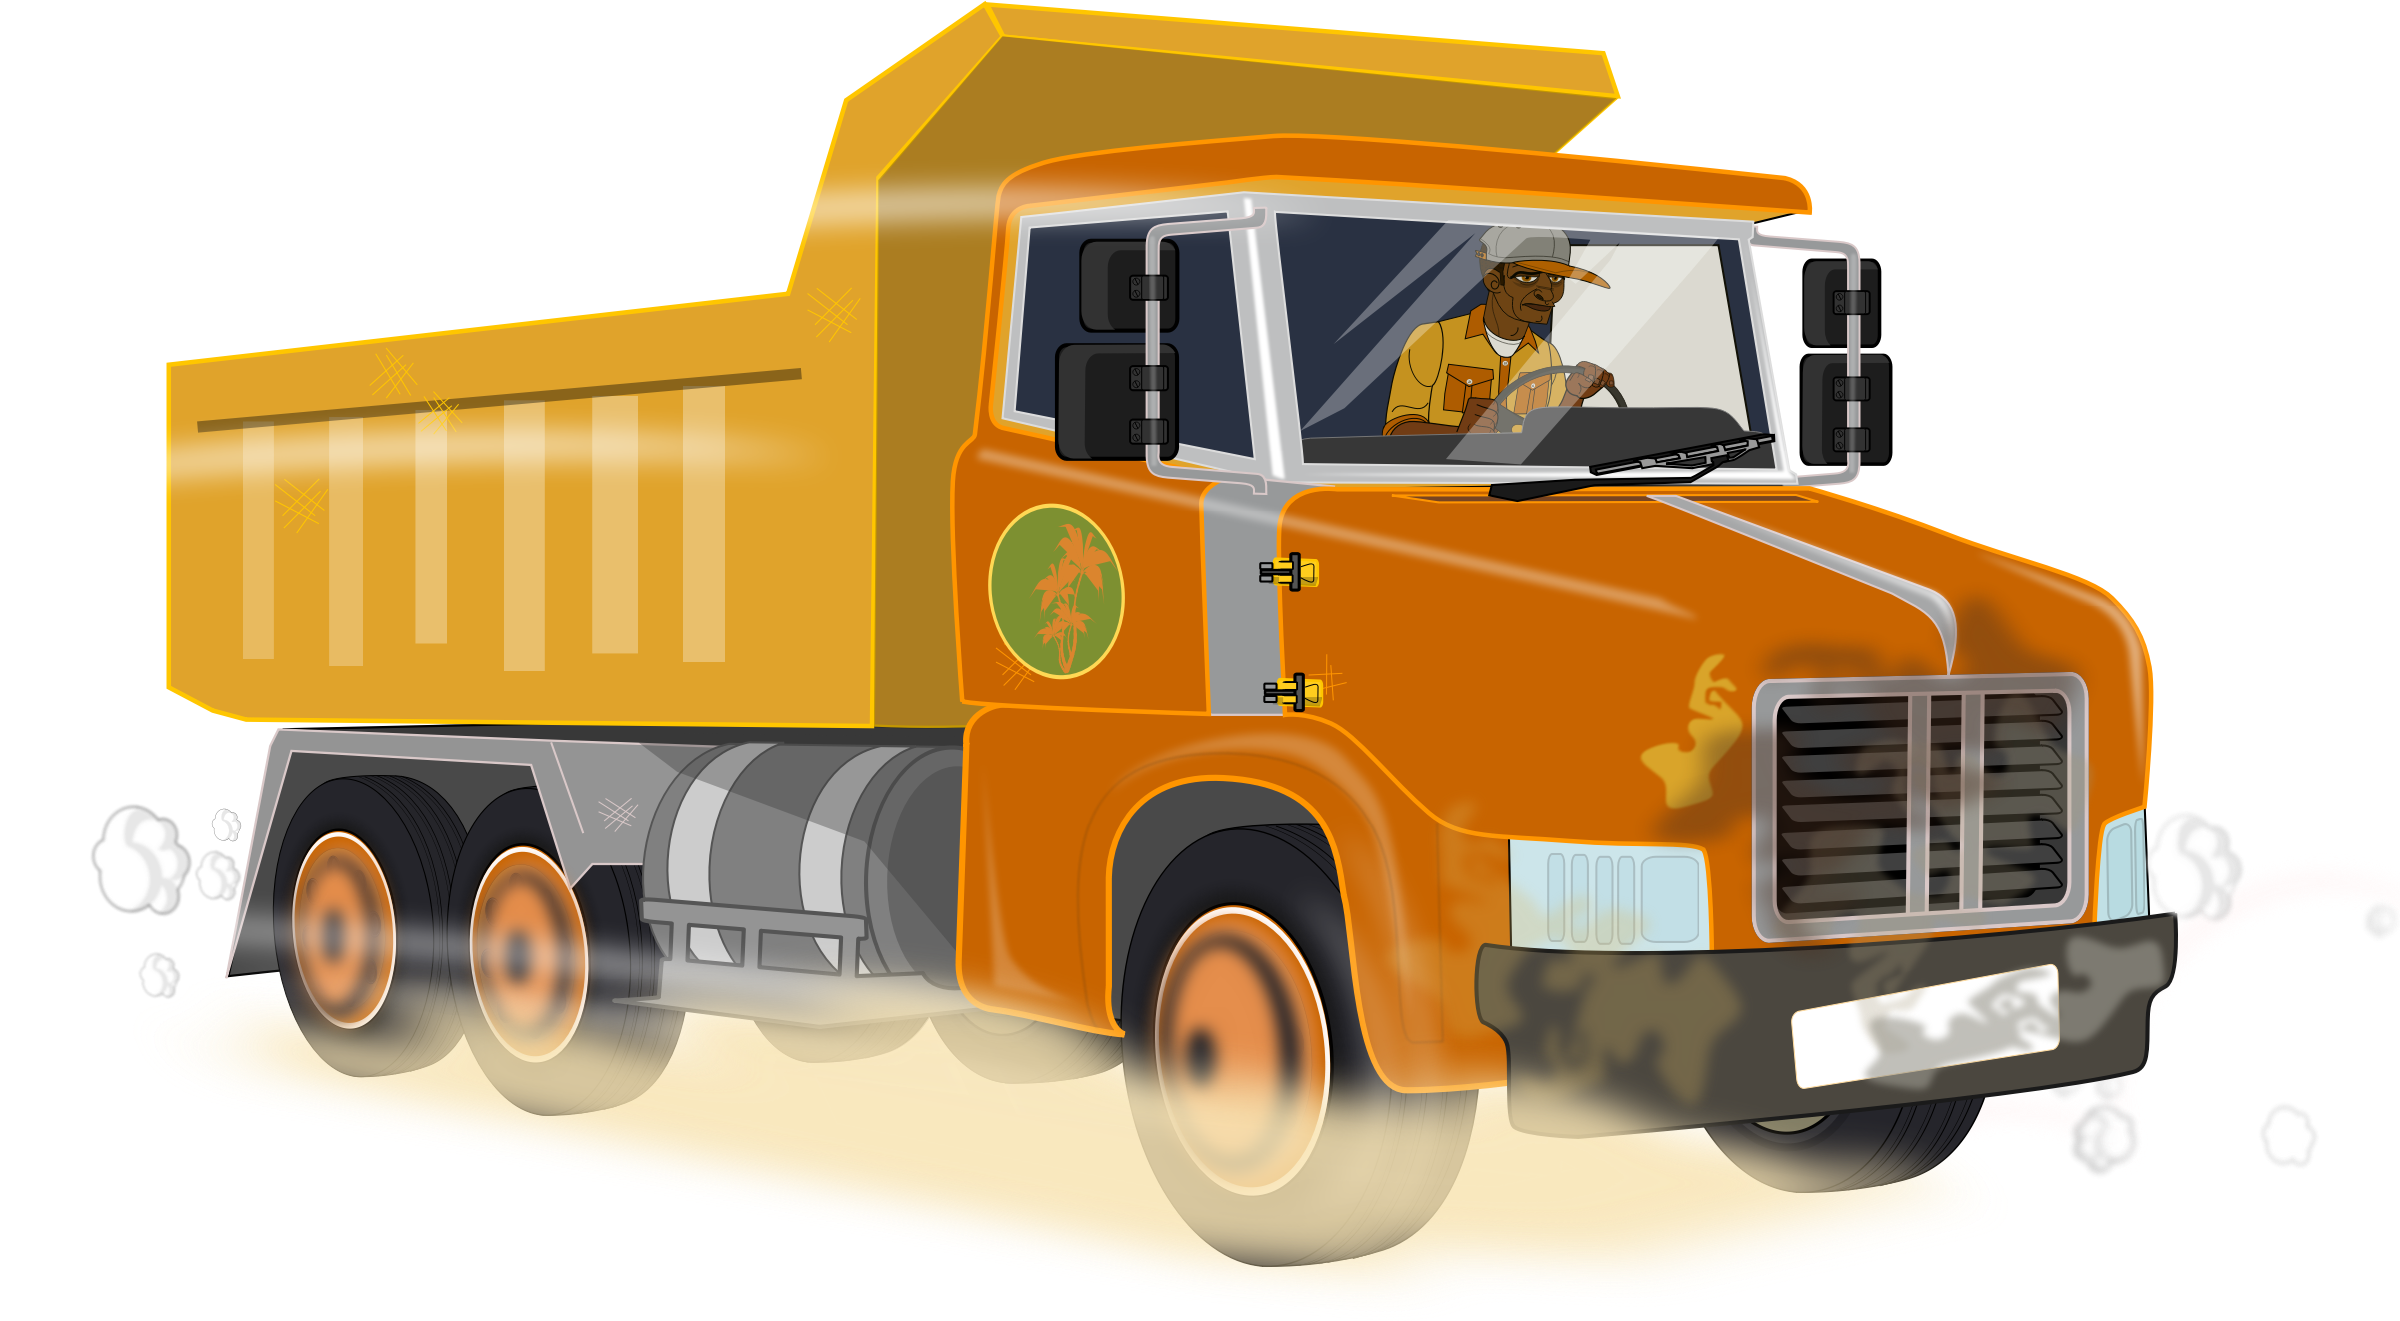 picture library stock Dump big image png. Construction truck clipart.